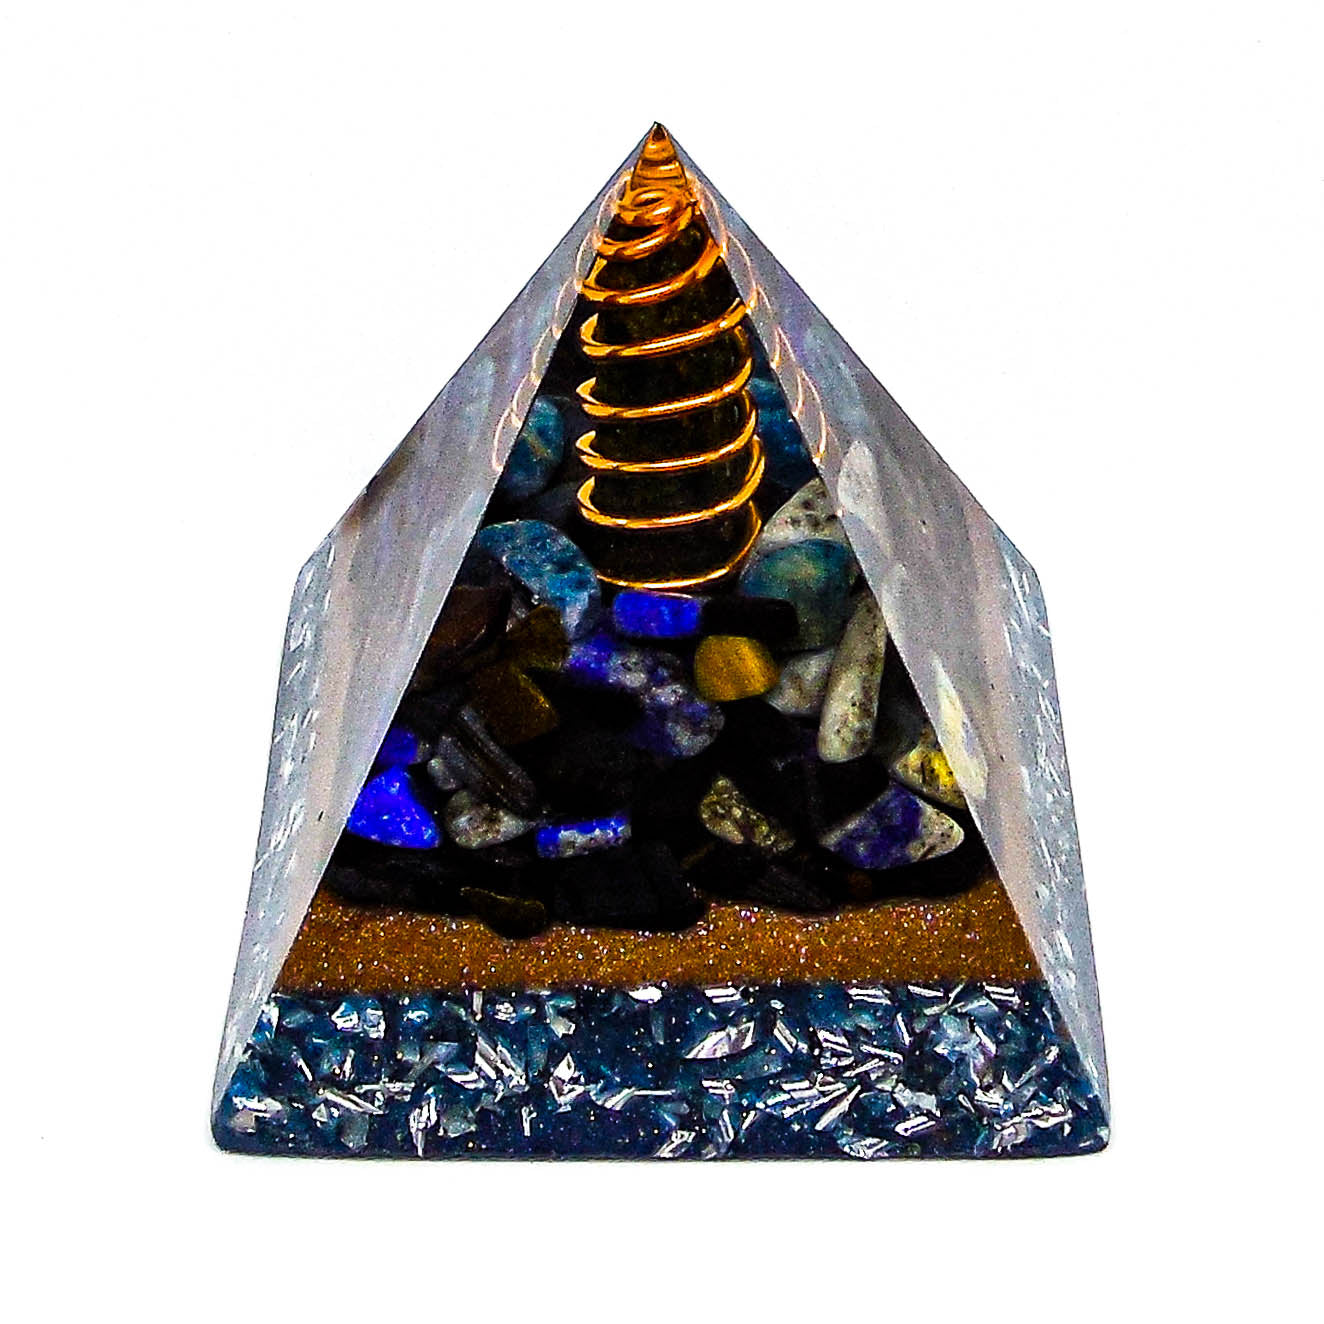 Harmonic Star Resonator - Orgone Transmuter Pyramid (Eye Of Tibet) - Star Gate